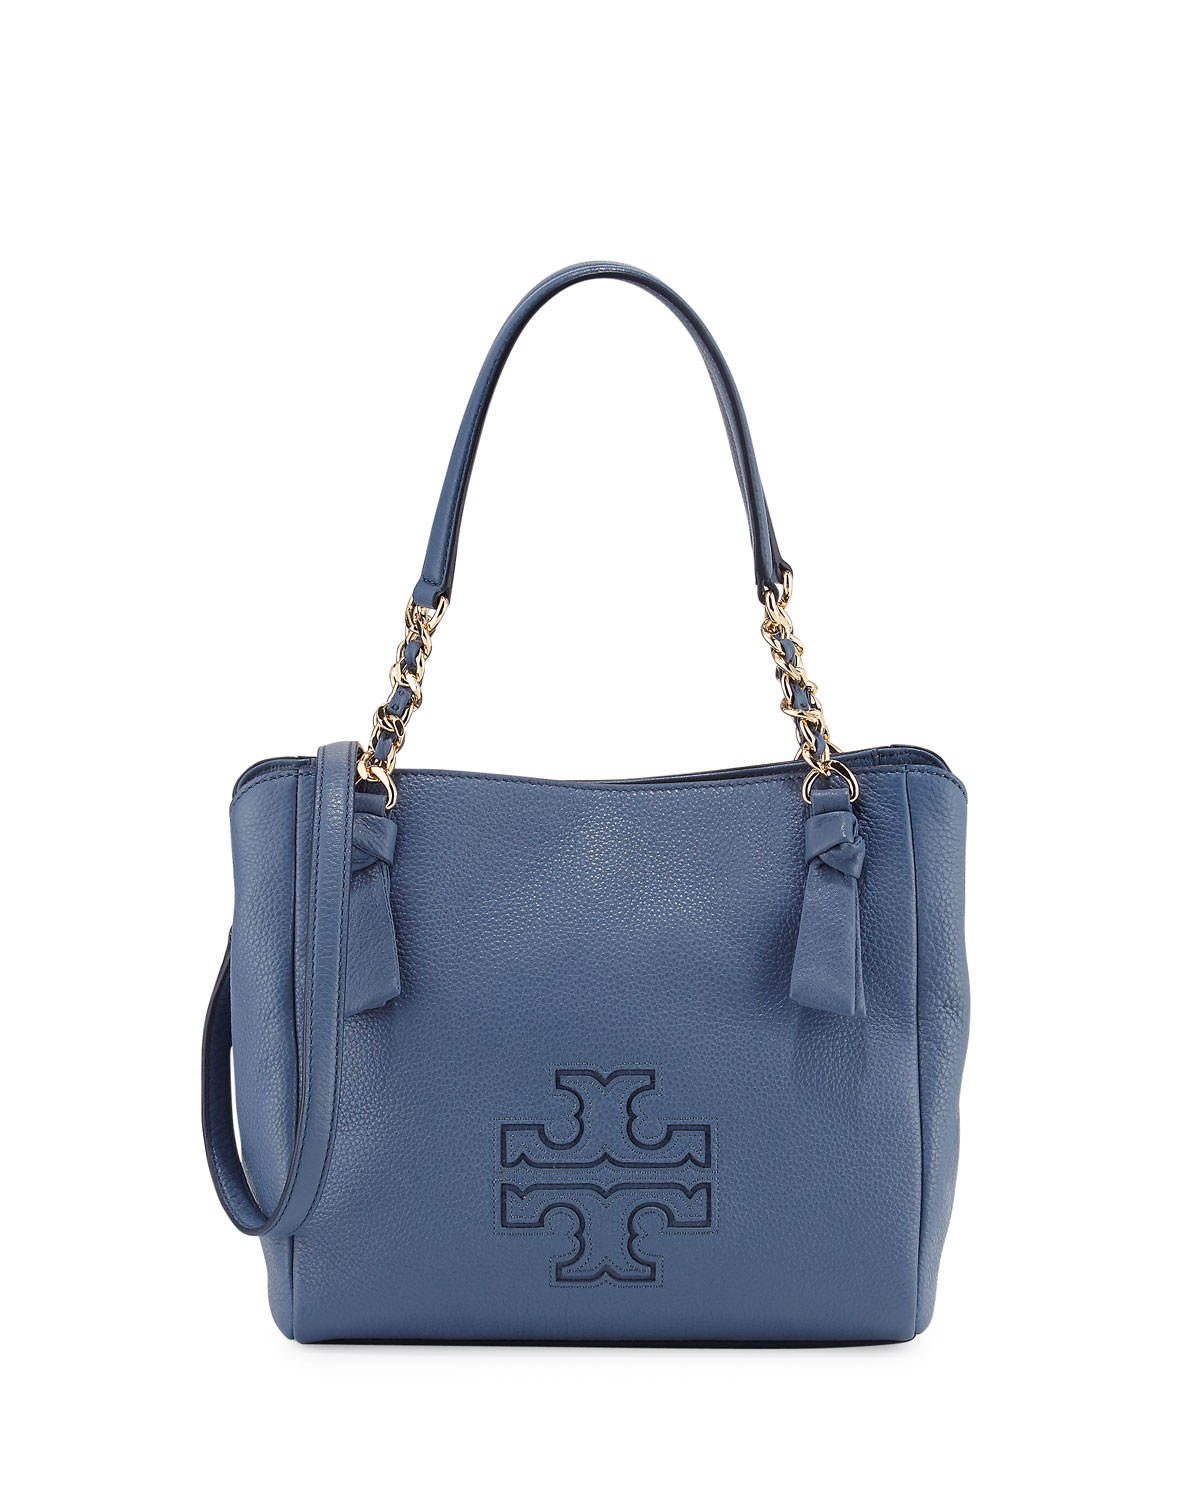 4736f340f7ac5 Tory Burch Harper Small Leather Satchel Bag